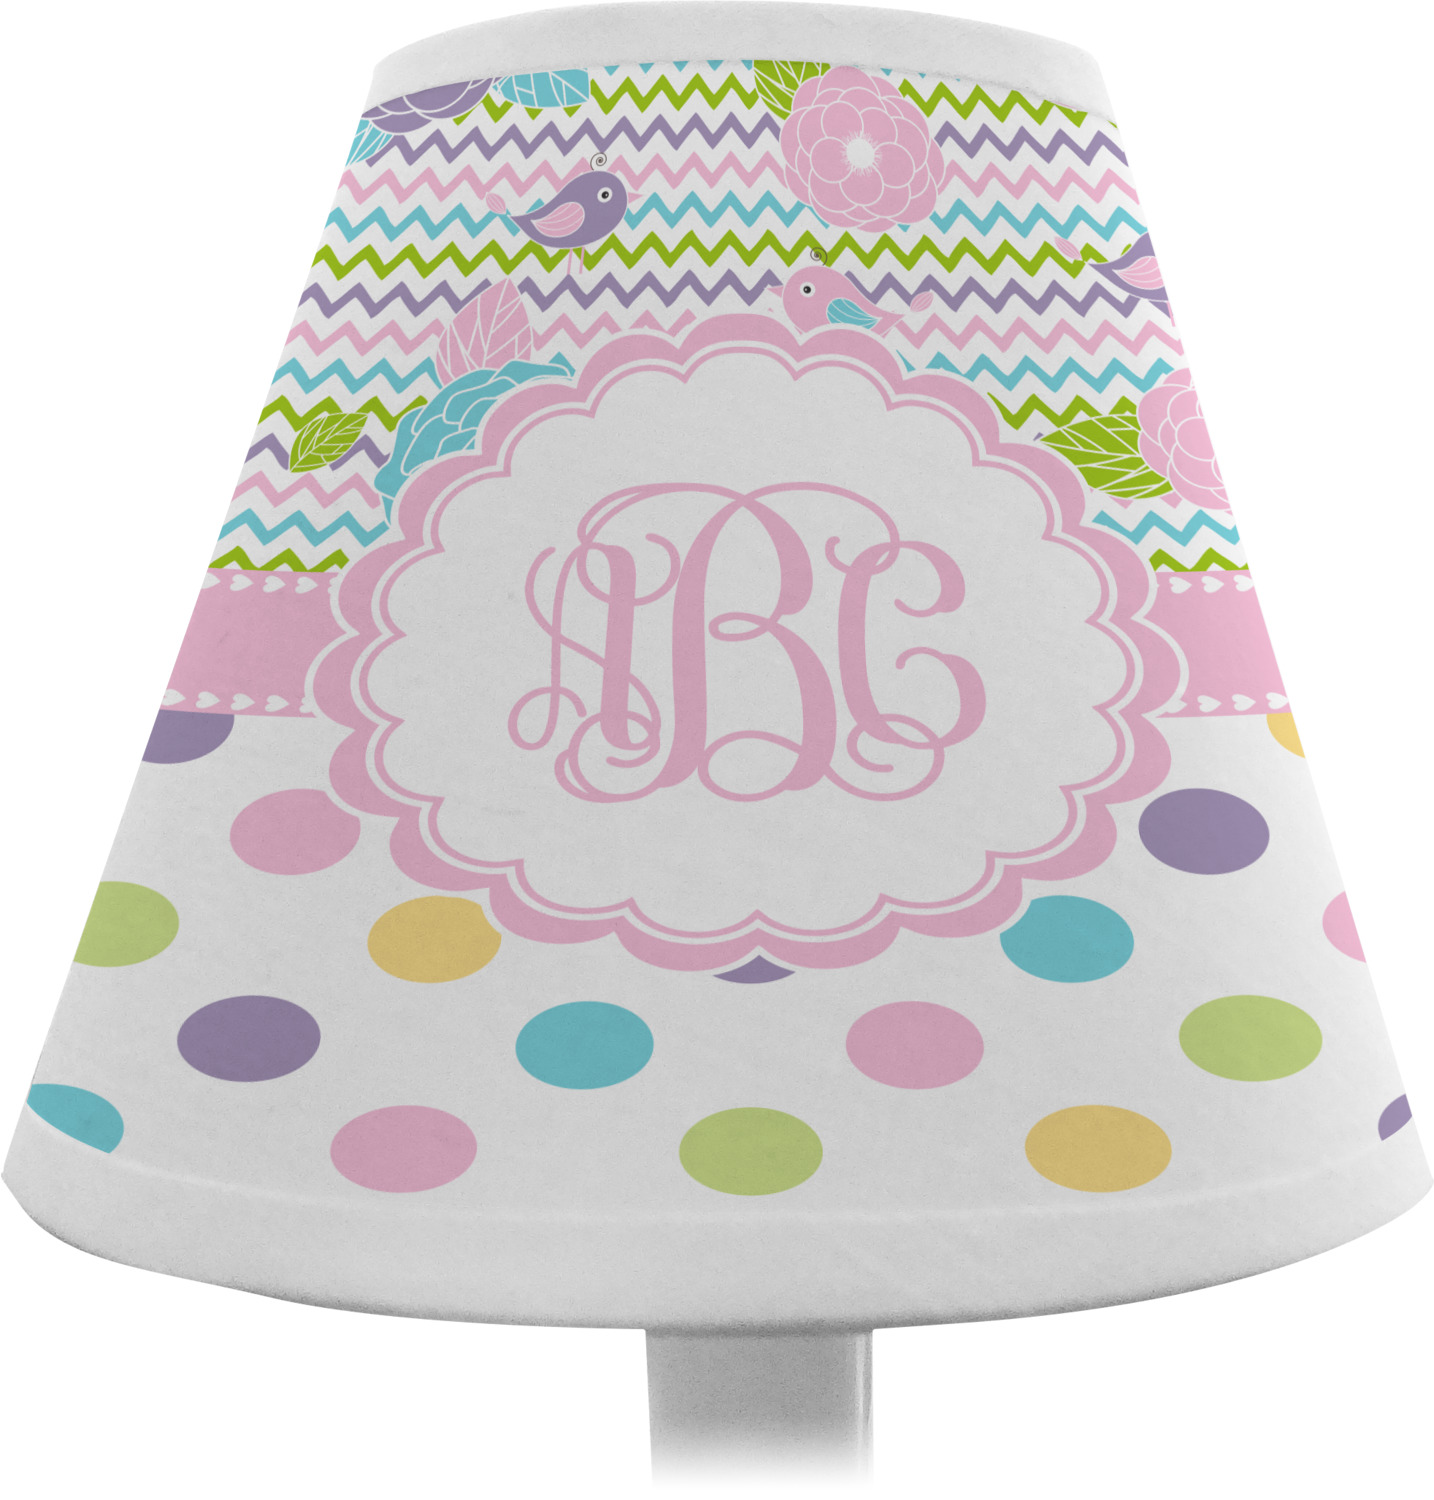 Girly Lamps For Bedroom: Girly Girl Chandelier Lamp Shade (Personalized